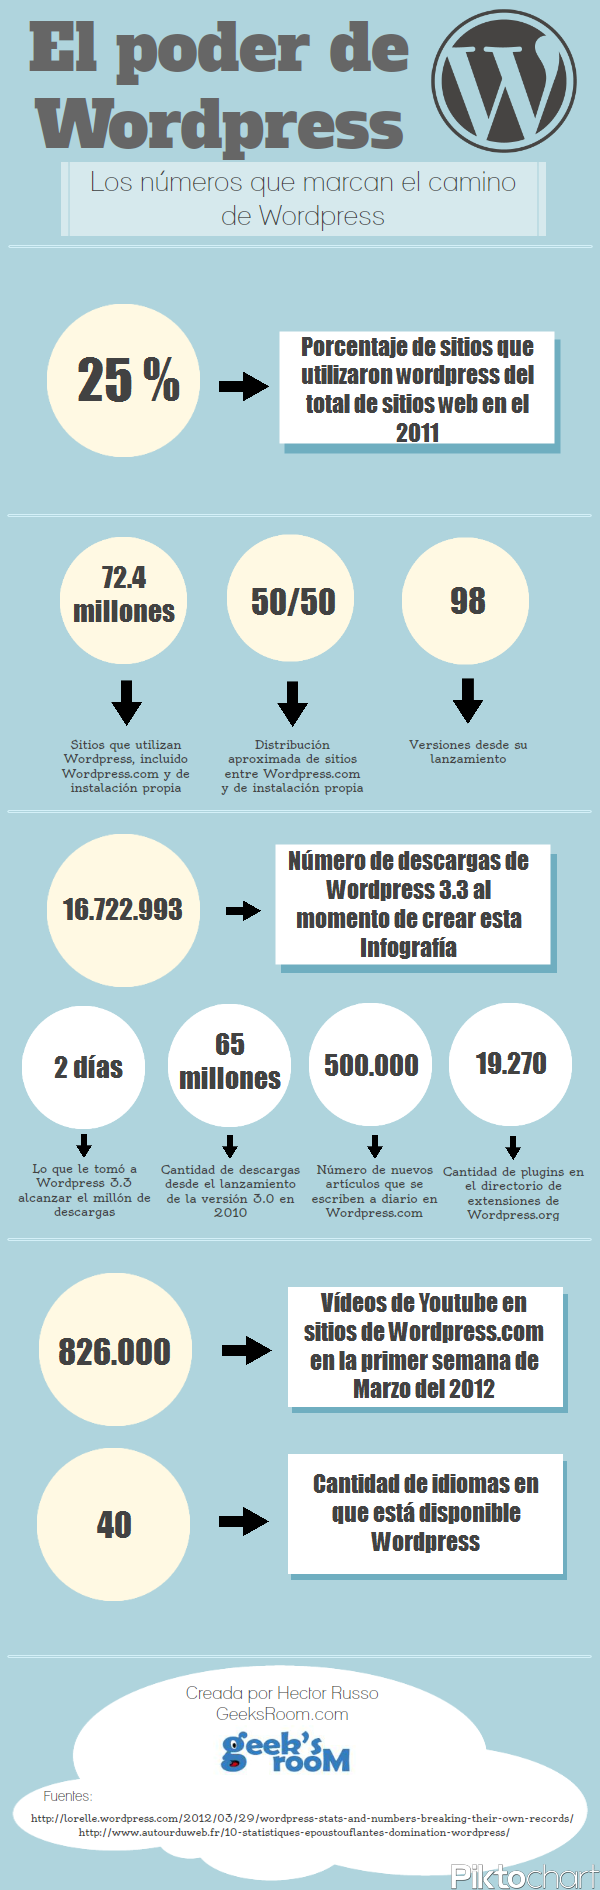 El impacto de WordPress en Internet